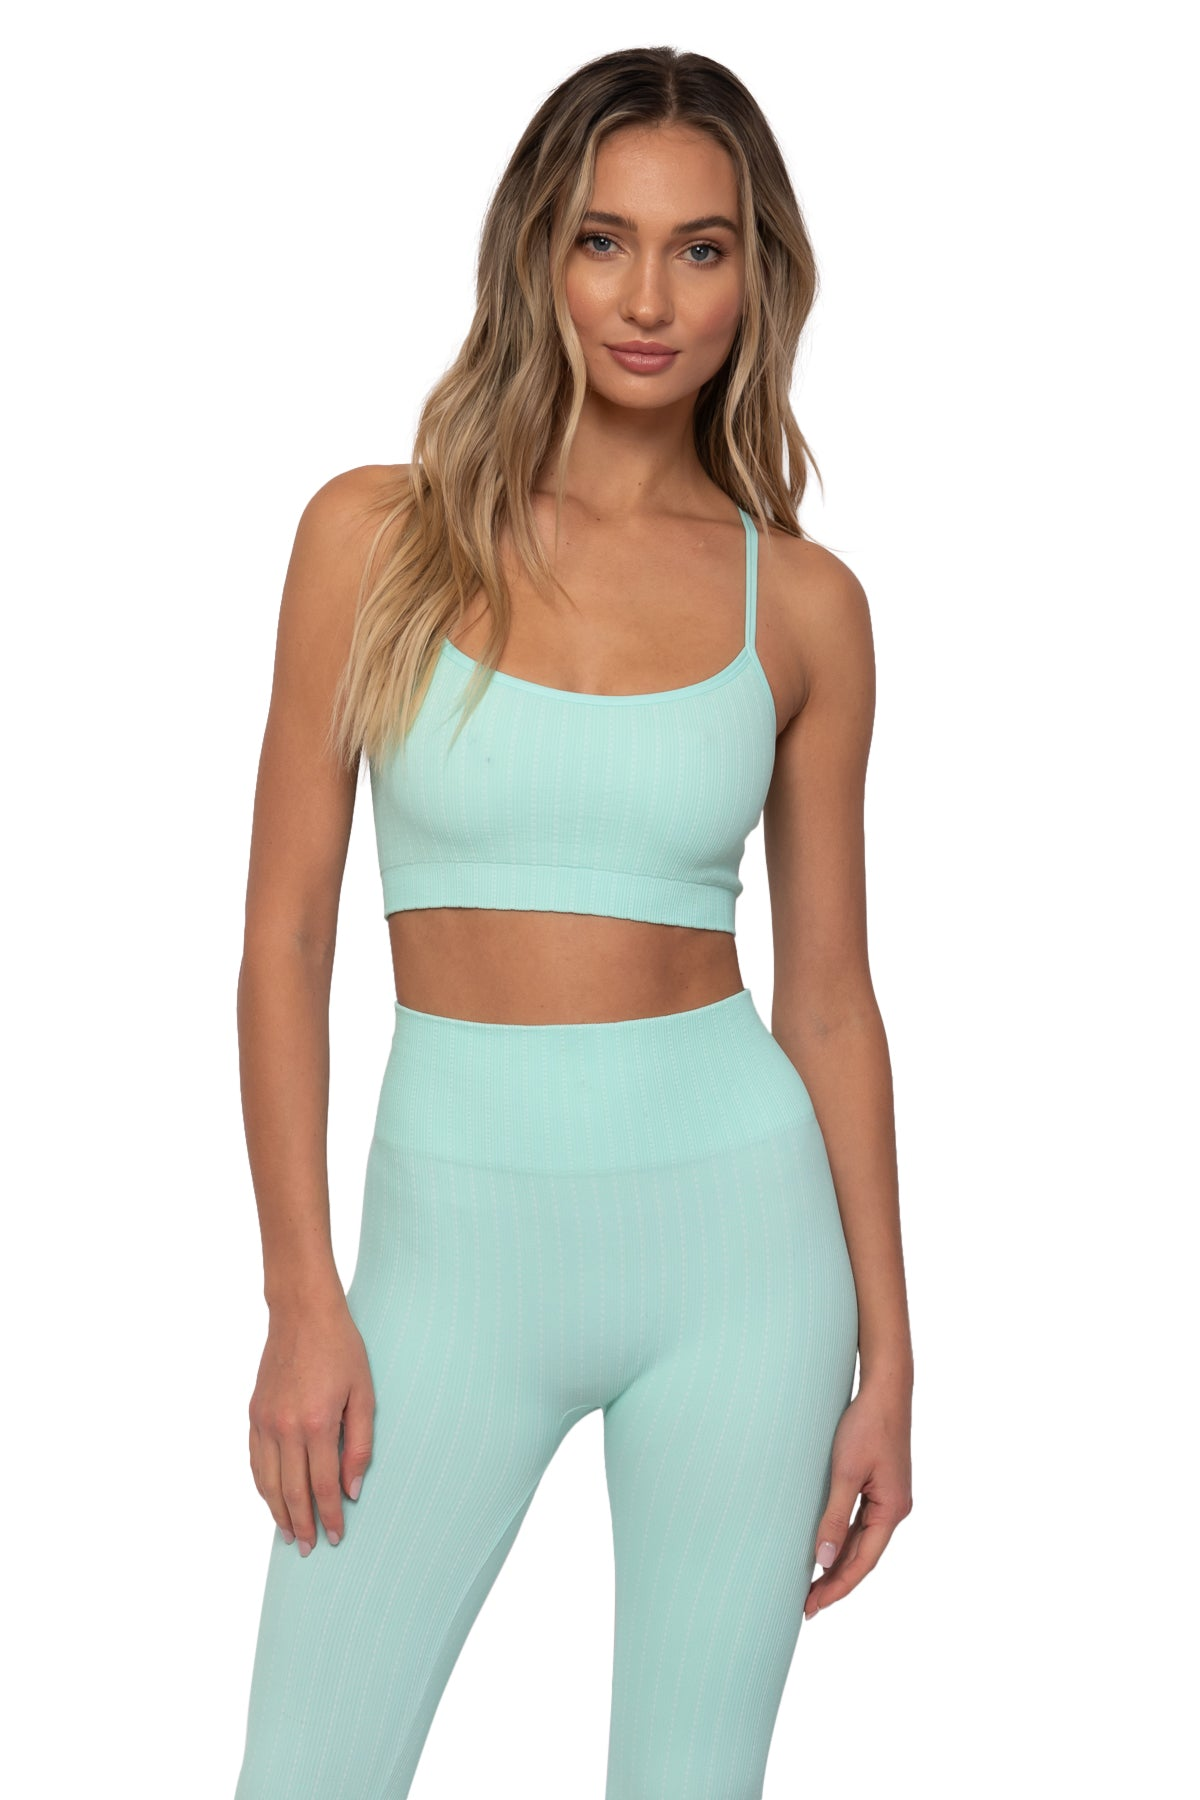 Seafoam Pin Stripe Bra